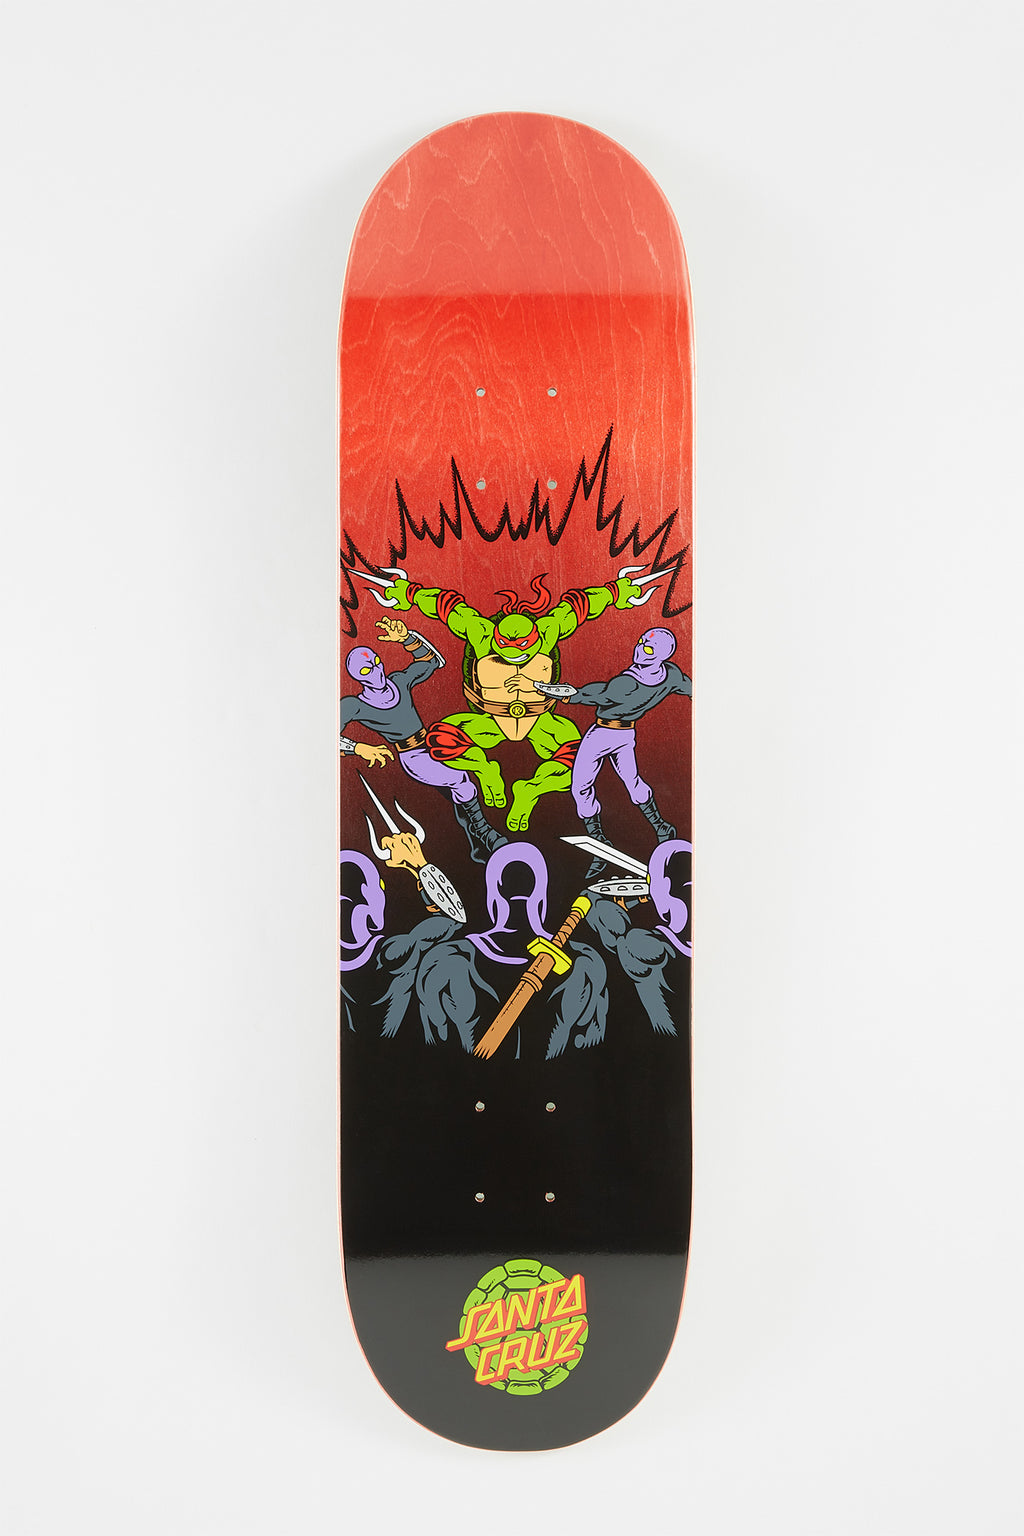 Ninja Turtles x Santa Cruz Raphael Skateboard Deck